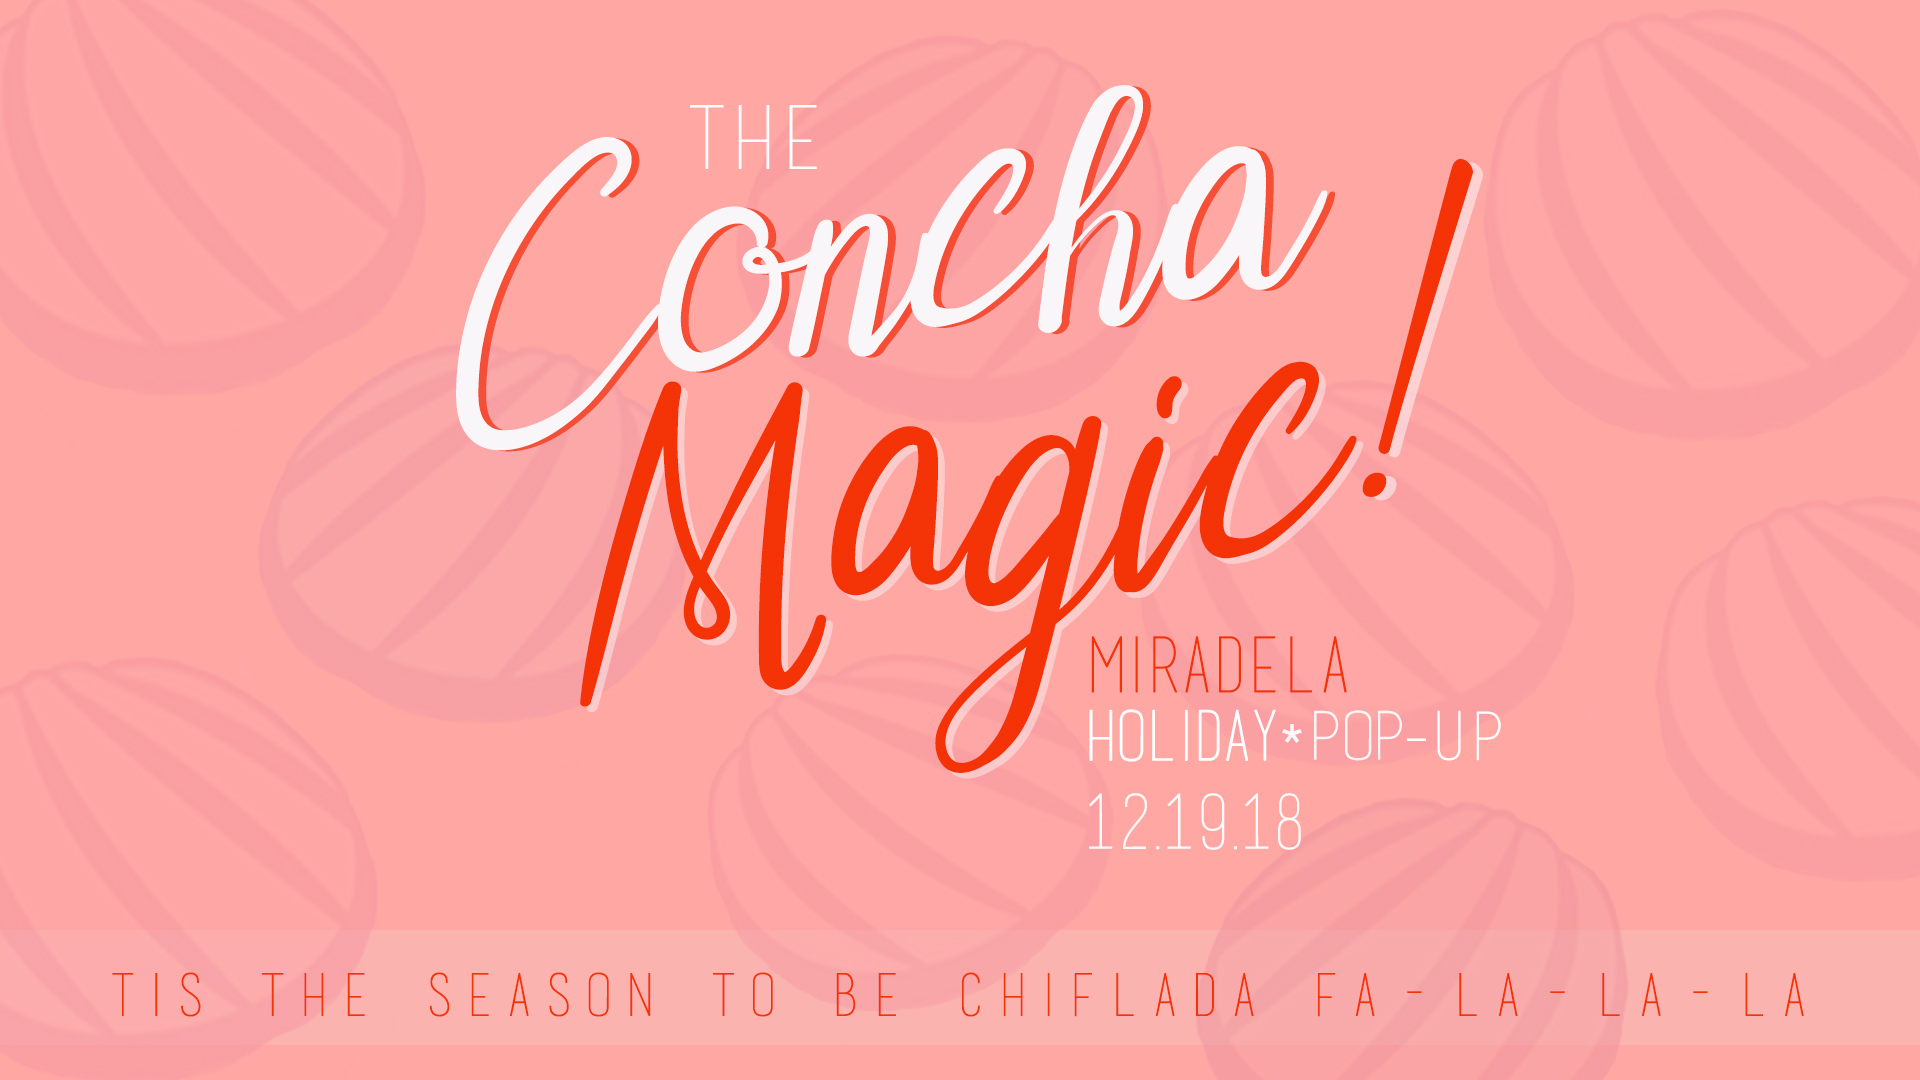 Concha_magic_website.jpg